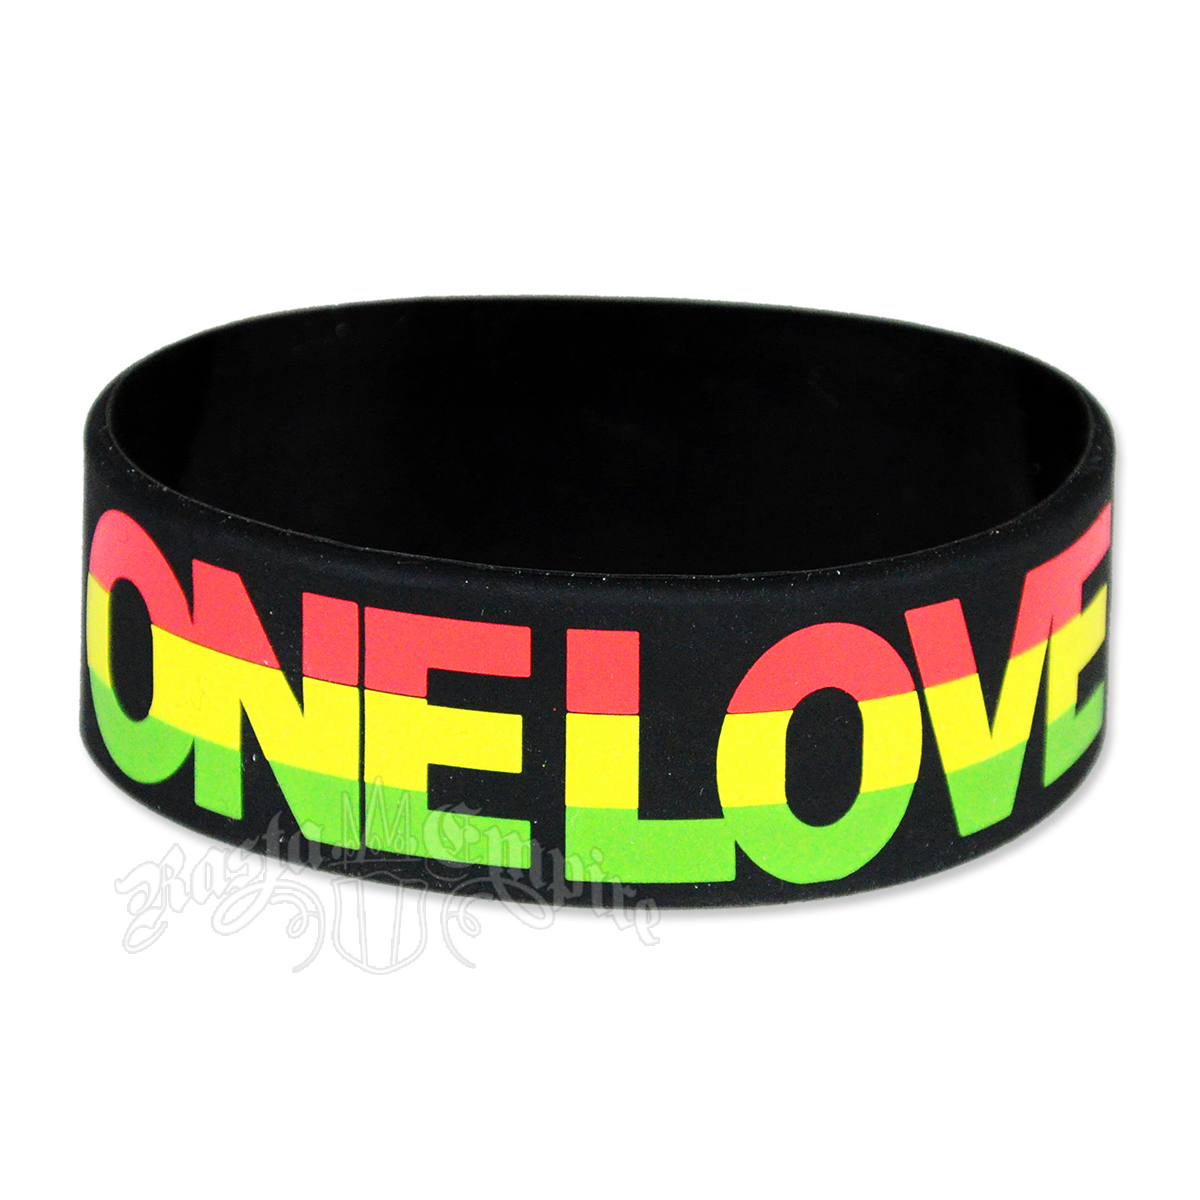 exclusive silicone rubber products men jewellery product image emporium collections bracelet mens s